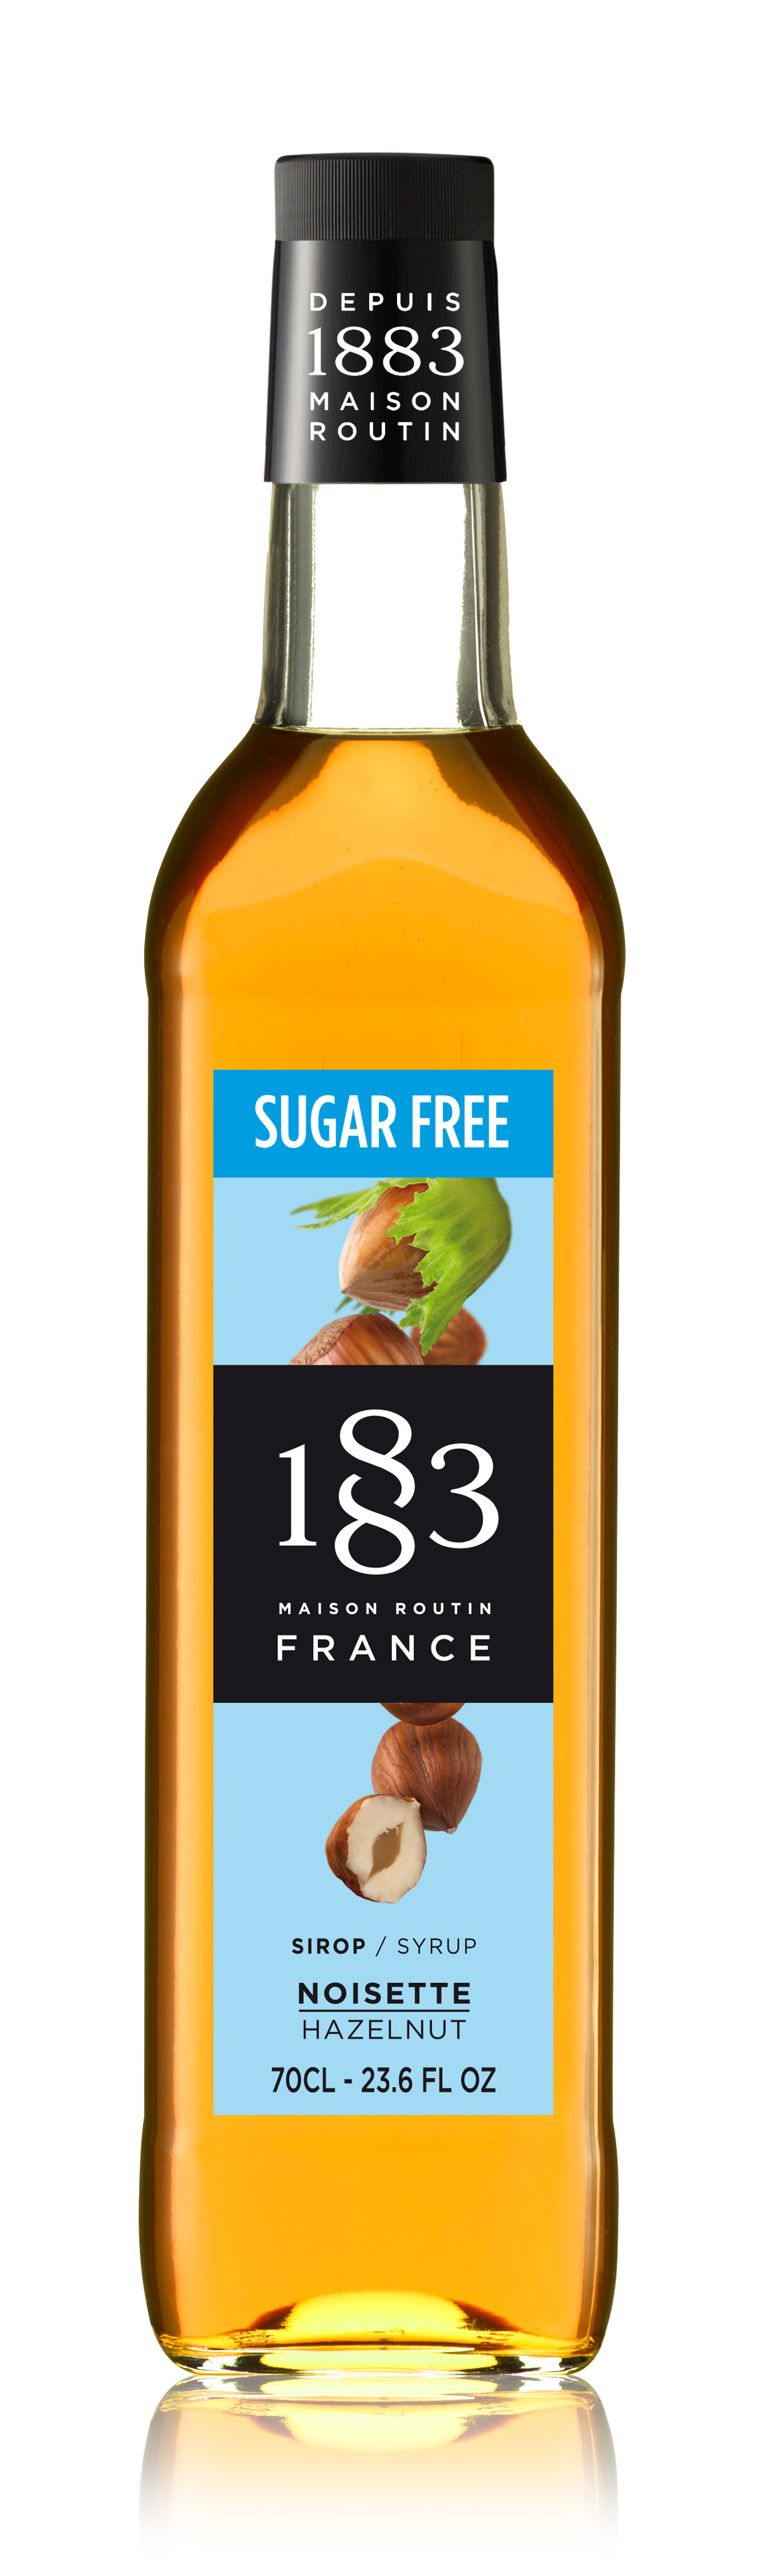 1883 Syrup Sugar Free Hazelnut 70cl Glass Bottle